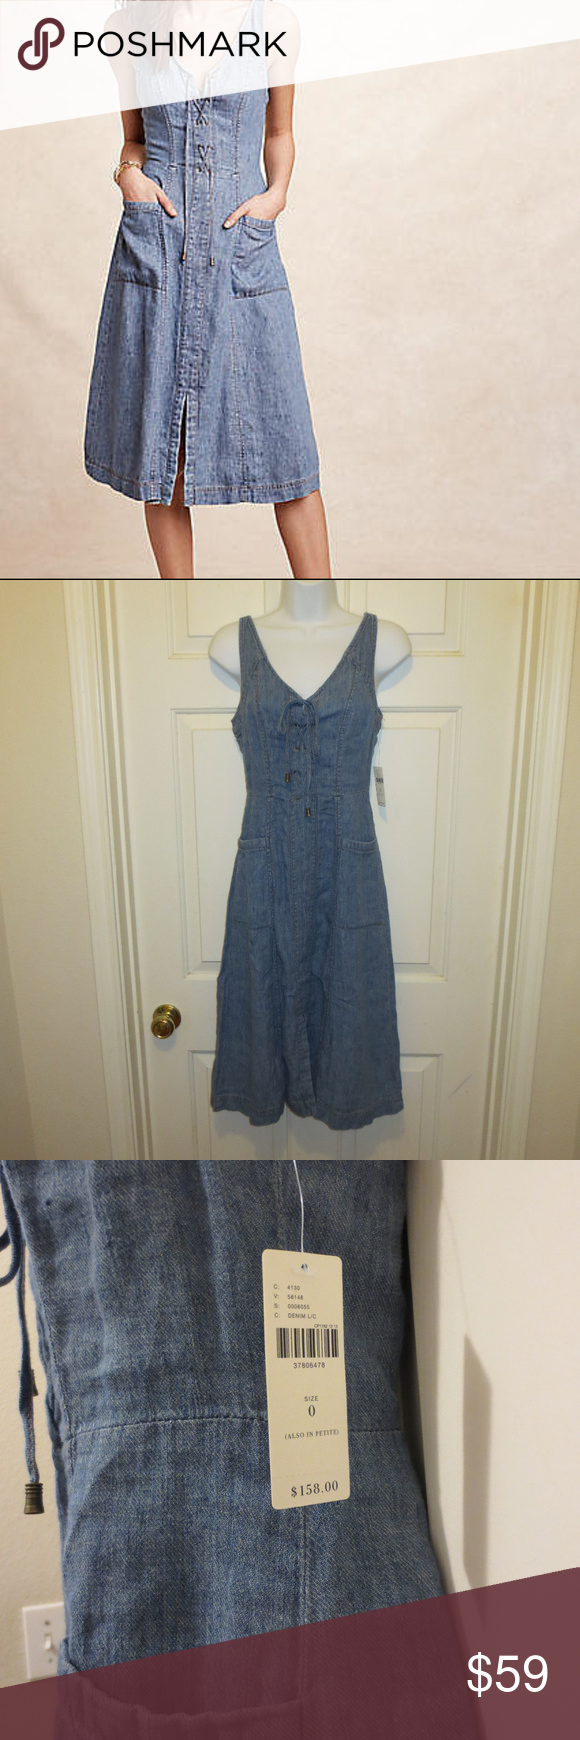 "Anthropologie Dress Lace Up Denim Lk Atoll XS New Brand: Anthropologie Holding Horses Condition: NEW with Tag!  Lace up under v- neck.  Linen, cotton A-line silhouette Front pockets Back zip with front lace-up detail  Size 0 - length 42"" Anthropologie Dresses Midi"